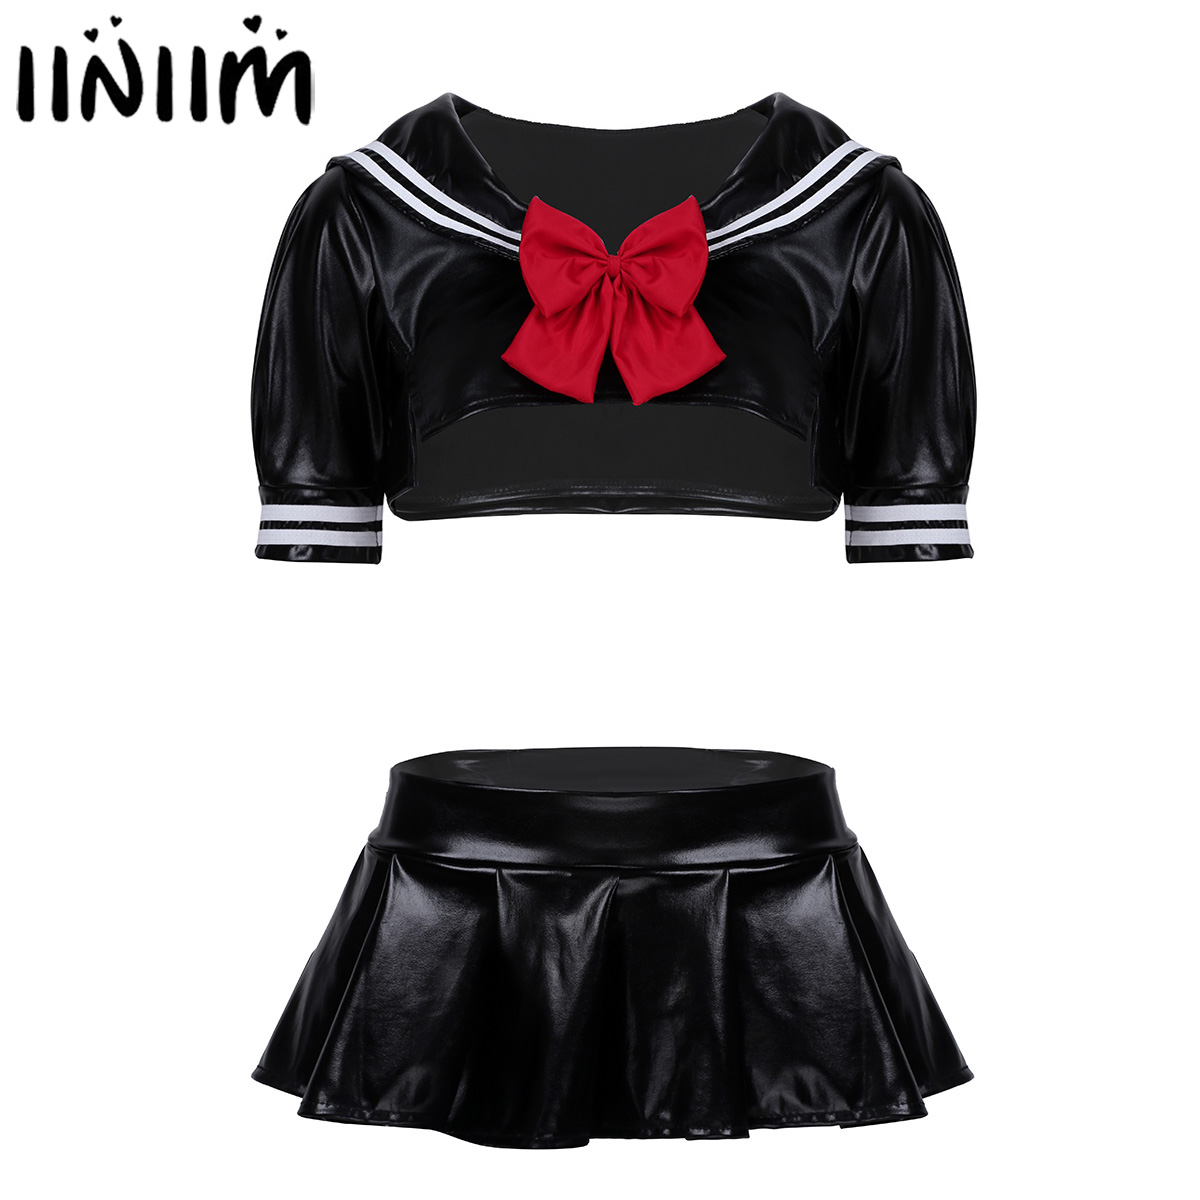 Womens Adults Wetlook Clubwear School Girls Cosplay Sexy Costume Dress Crop Top with Pleated Mini Skirt G-string and Bowtie